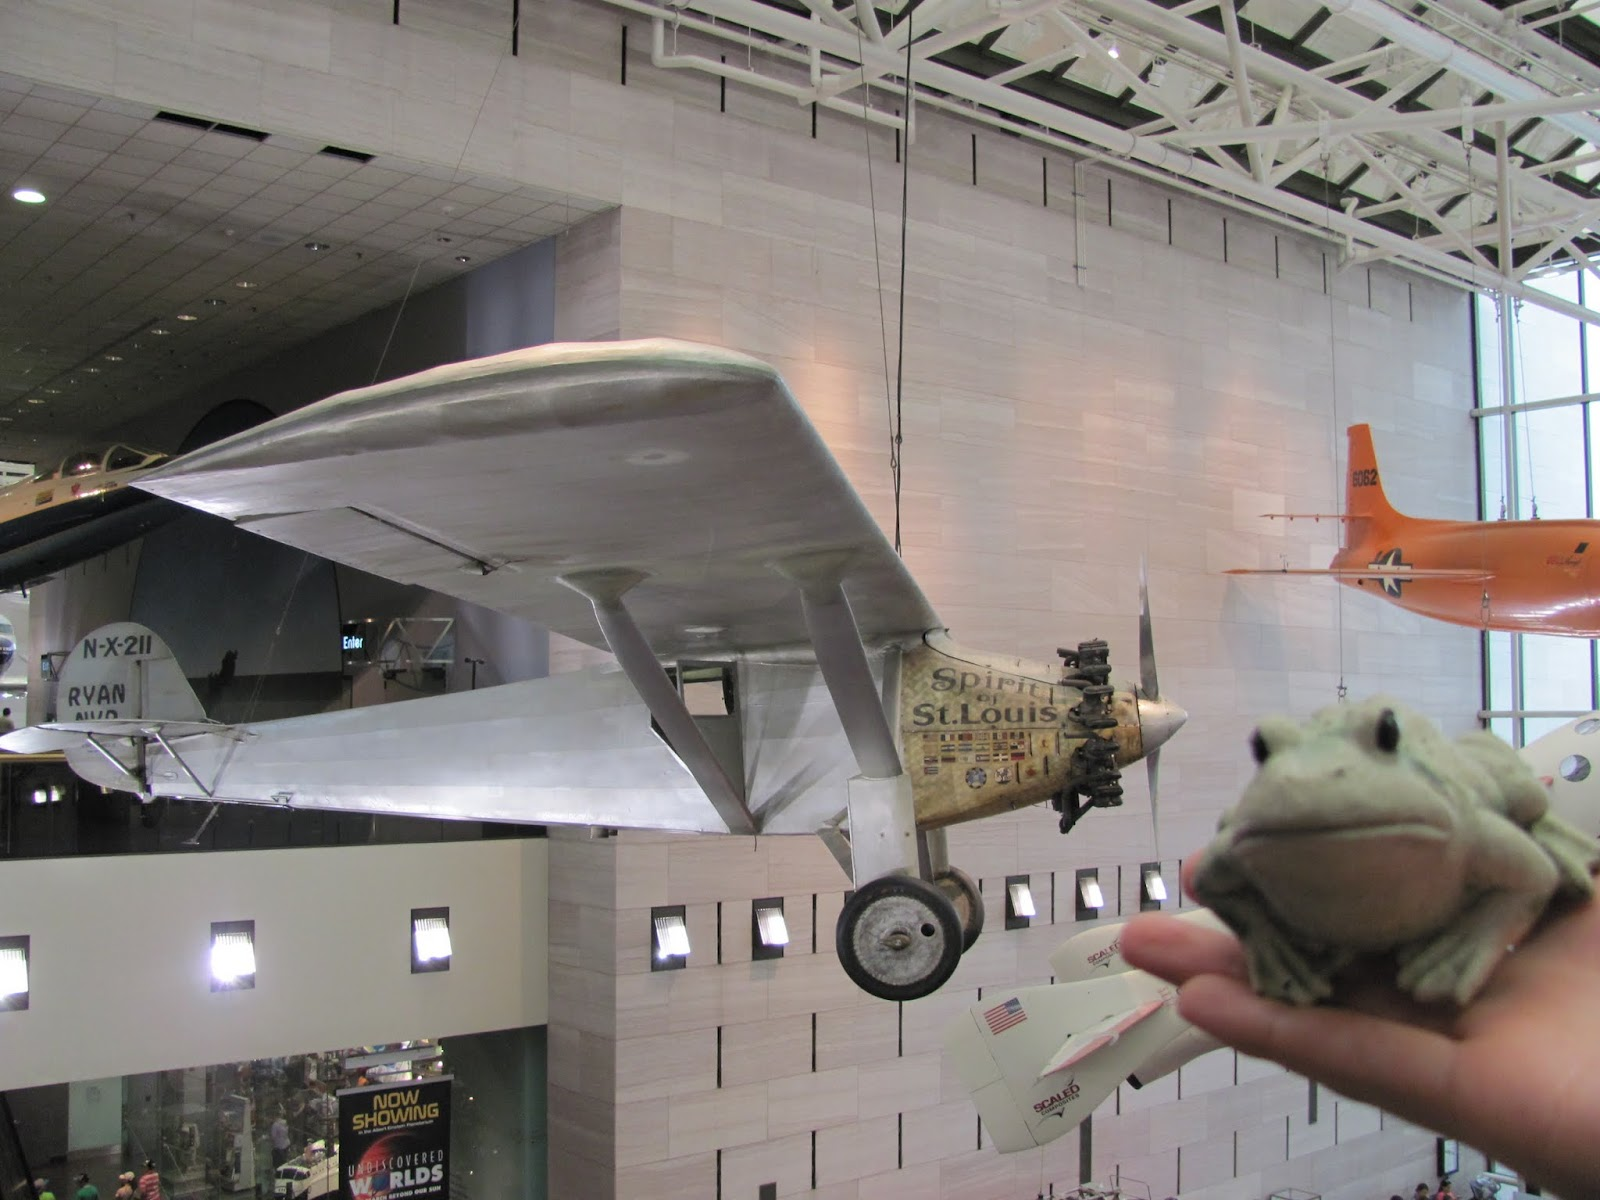 Frog poses with the Spirit of St. Louis at the Smithsonian Air and Space Museum in Washington, DC